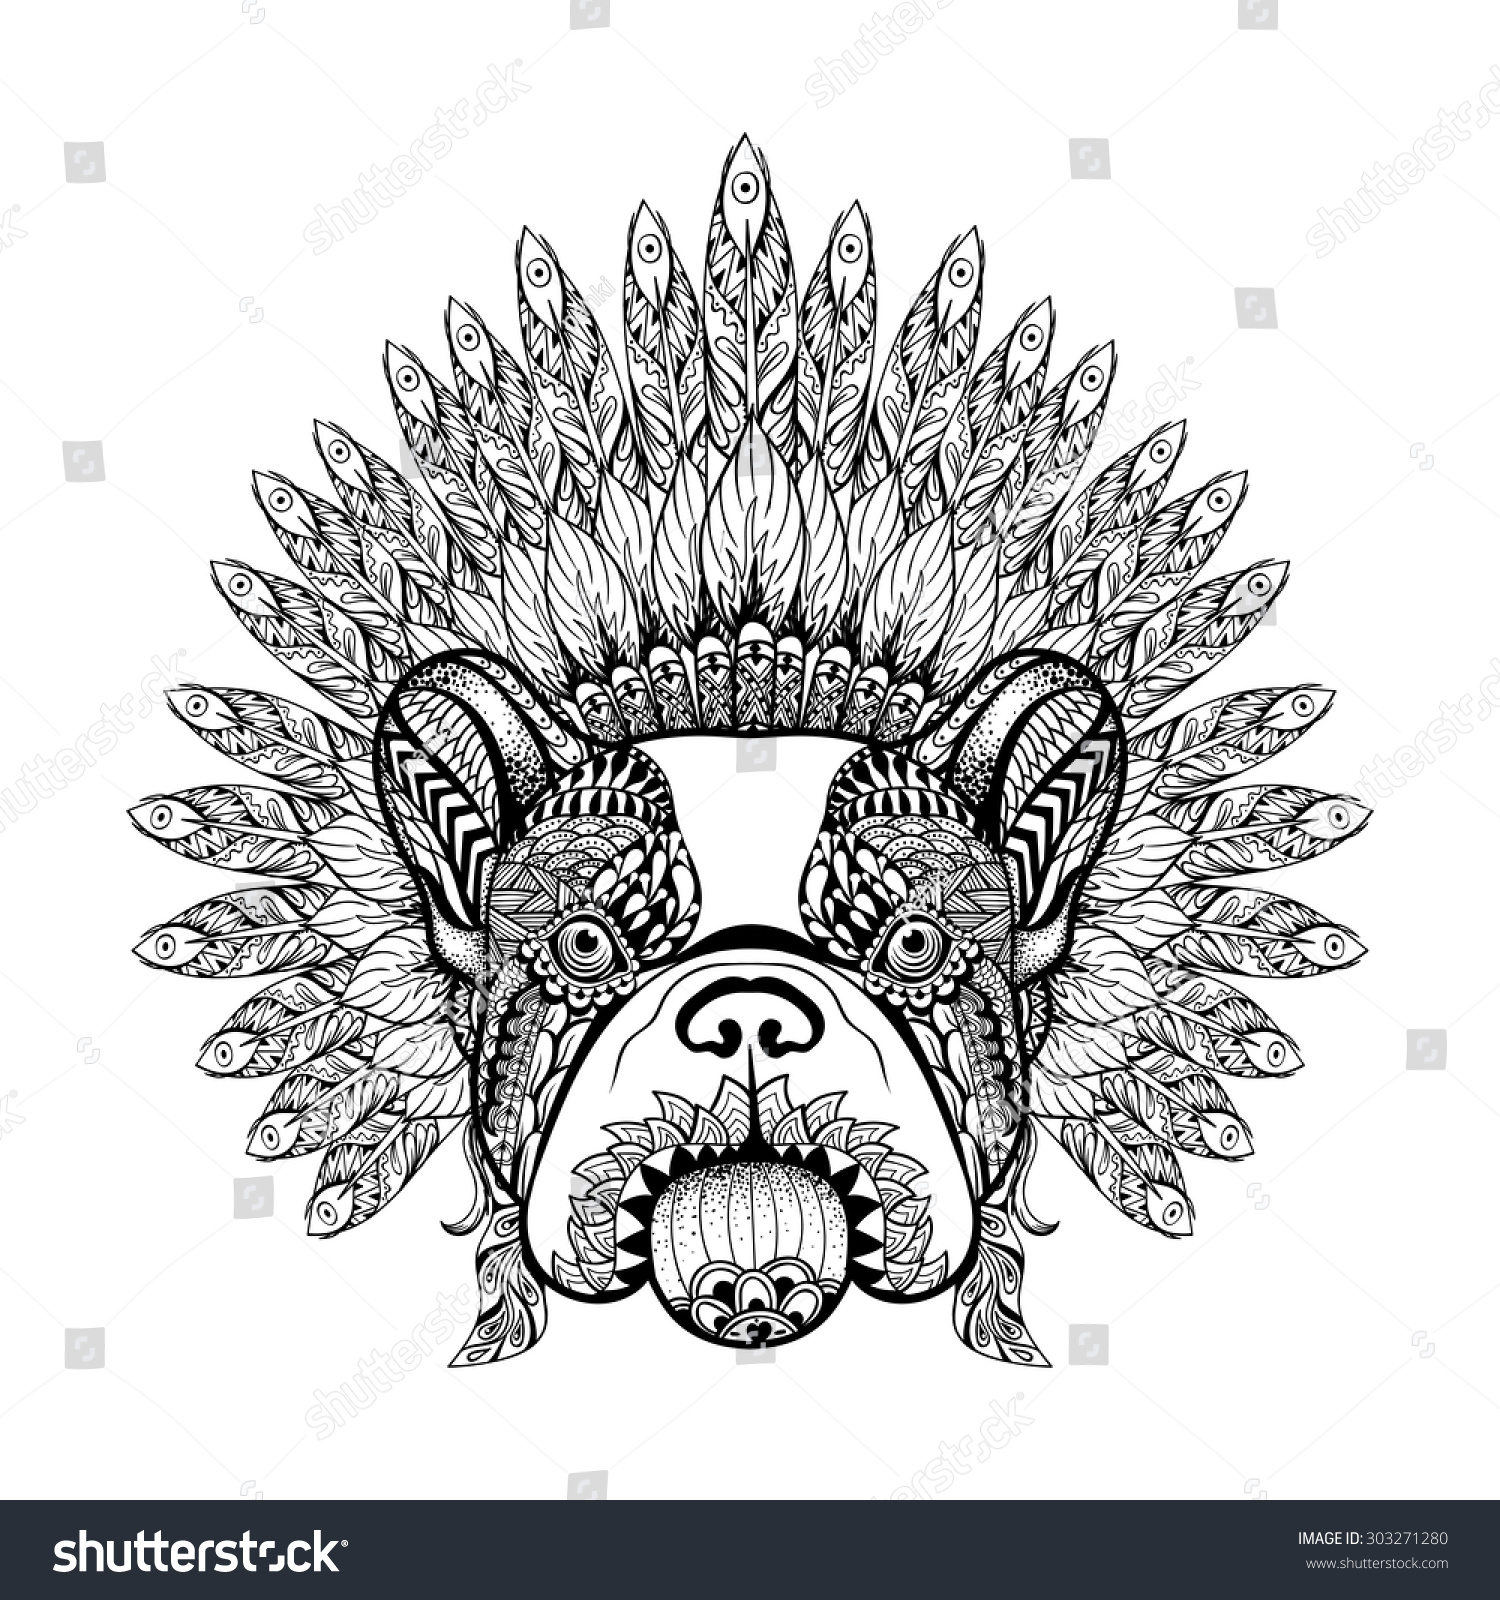 1deb3a61c Hand Drawn French Bulldog with Feathered zentangle War bonnet, high  detailed headdress for Indian Chief